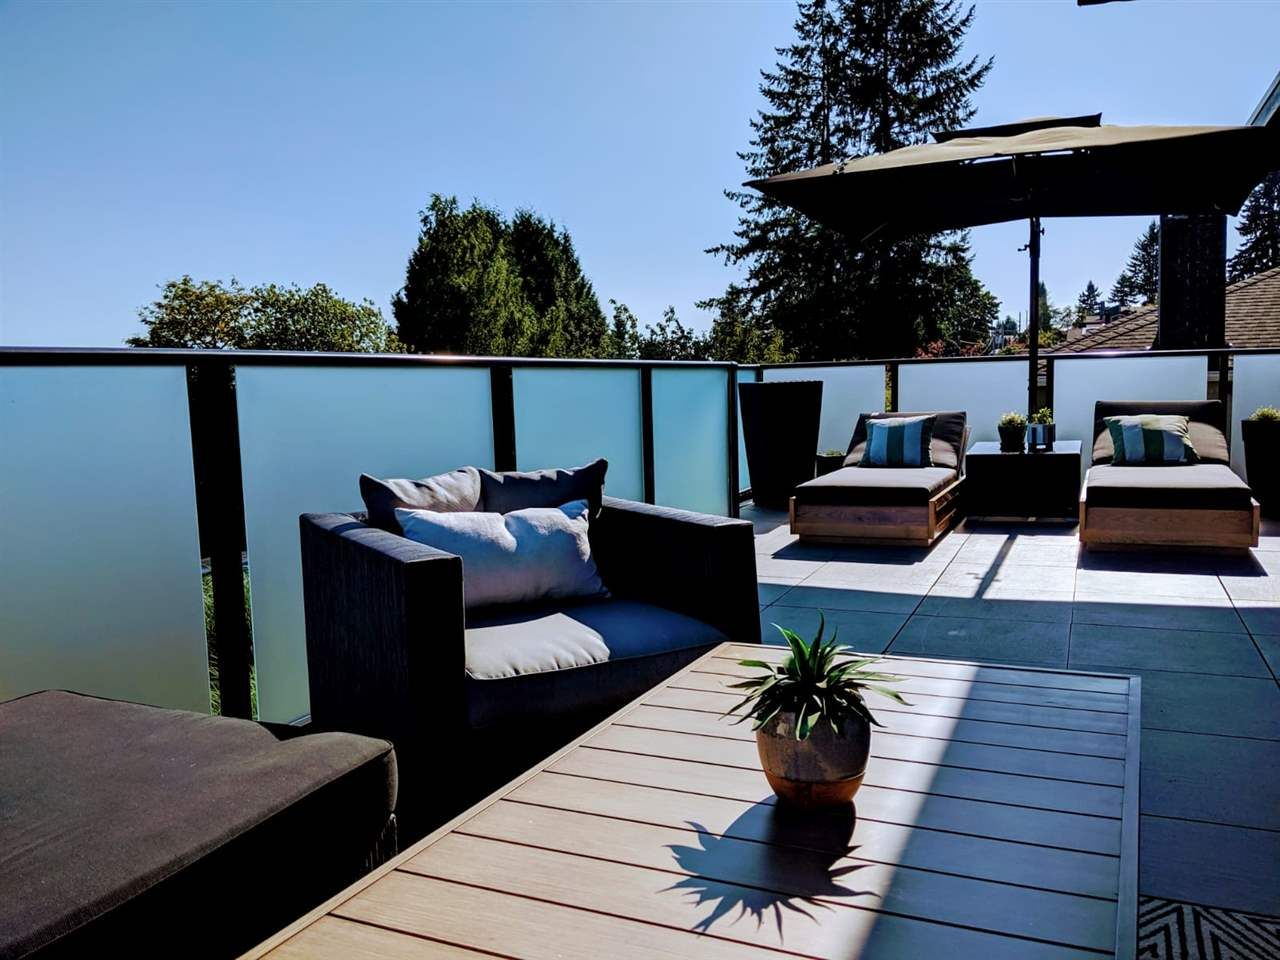 Photo 13: Photos: 882 WHITCHURCH Street in North Vancouver: Calverhall House for sale : MLS®# R2537806